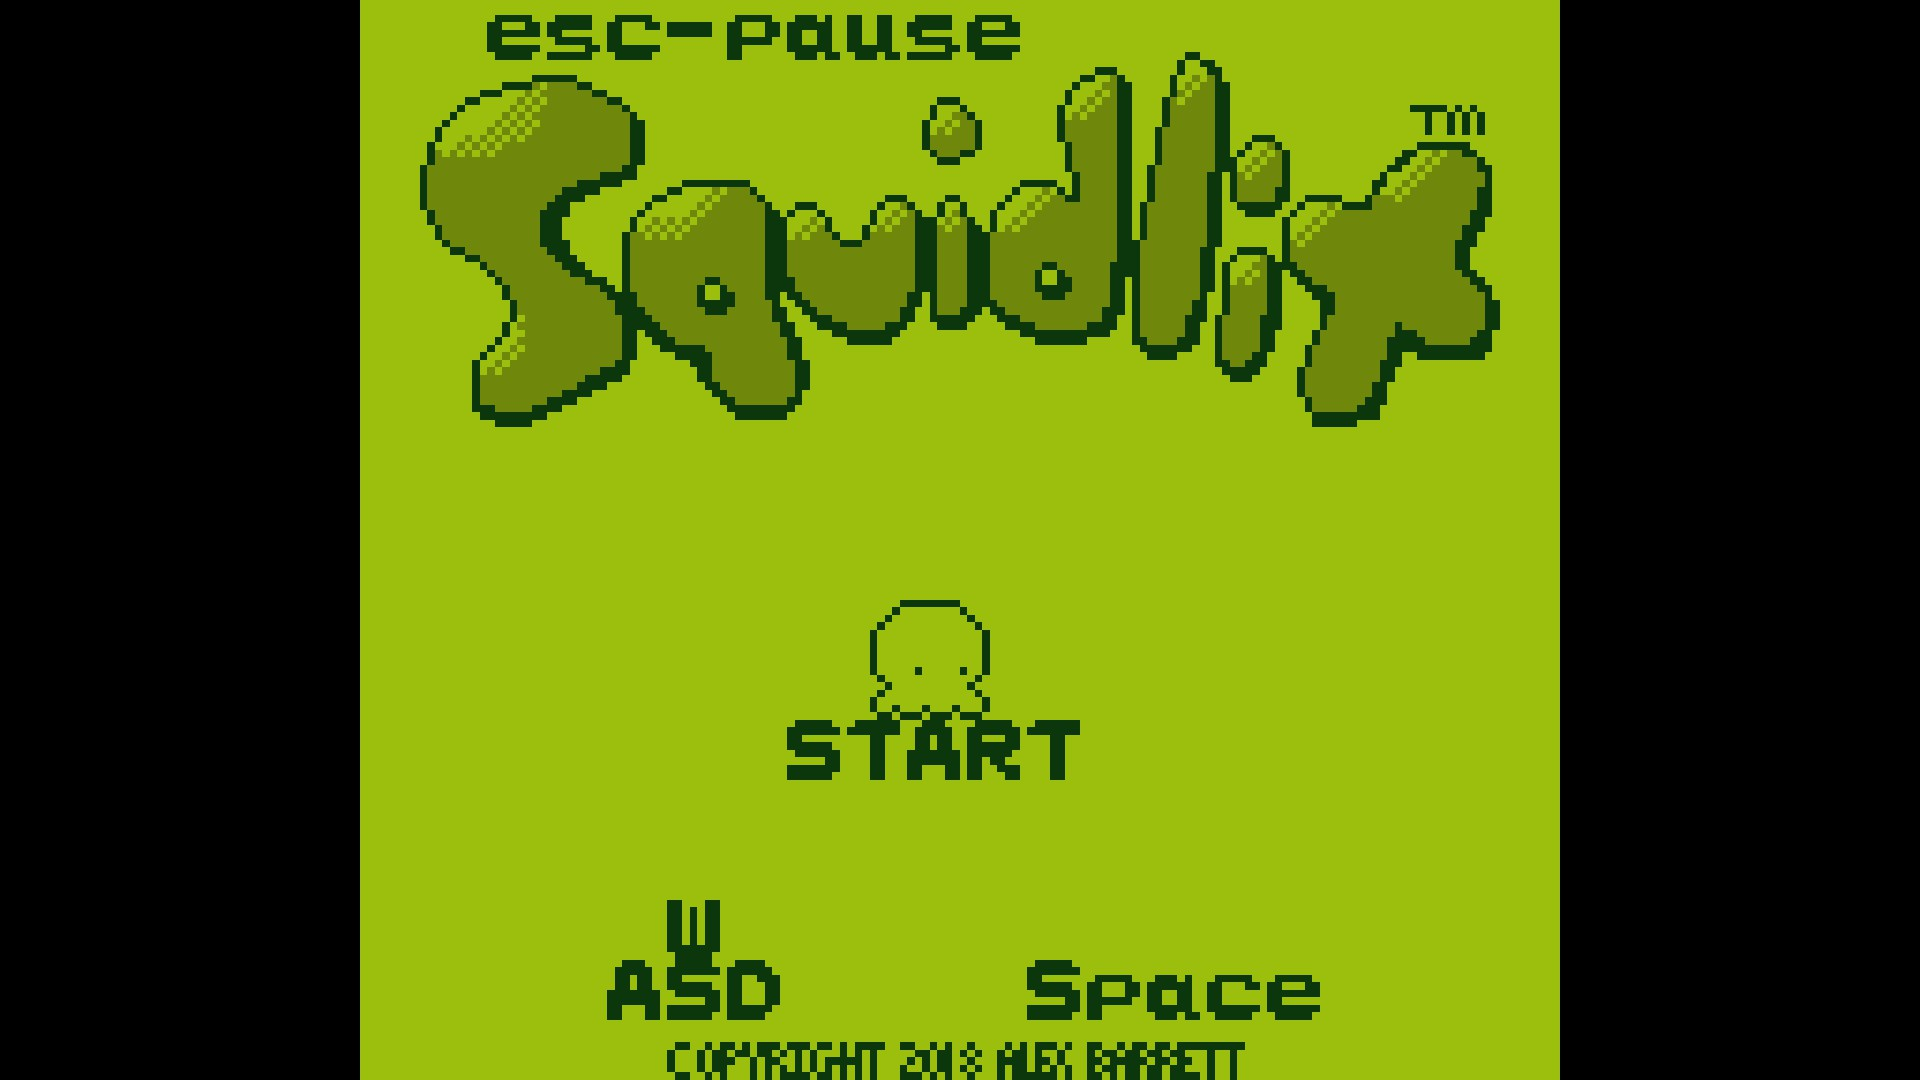 Review - Squidlit (PC)